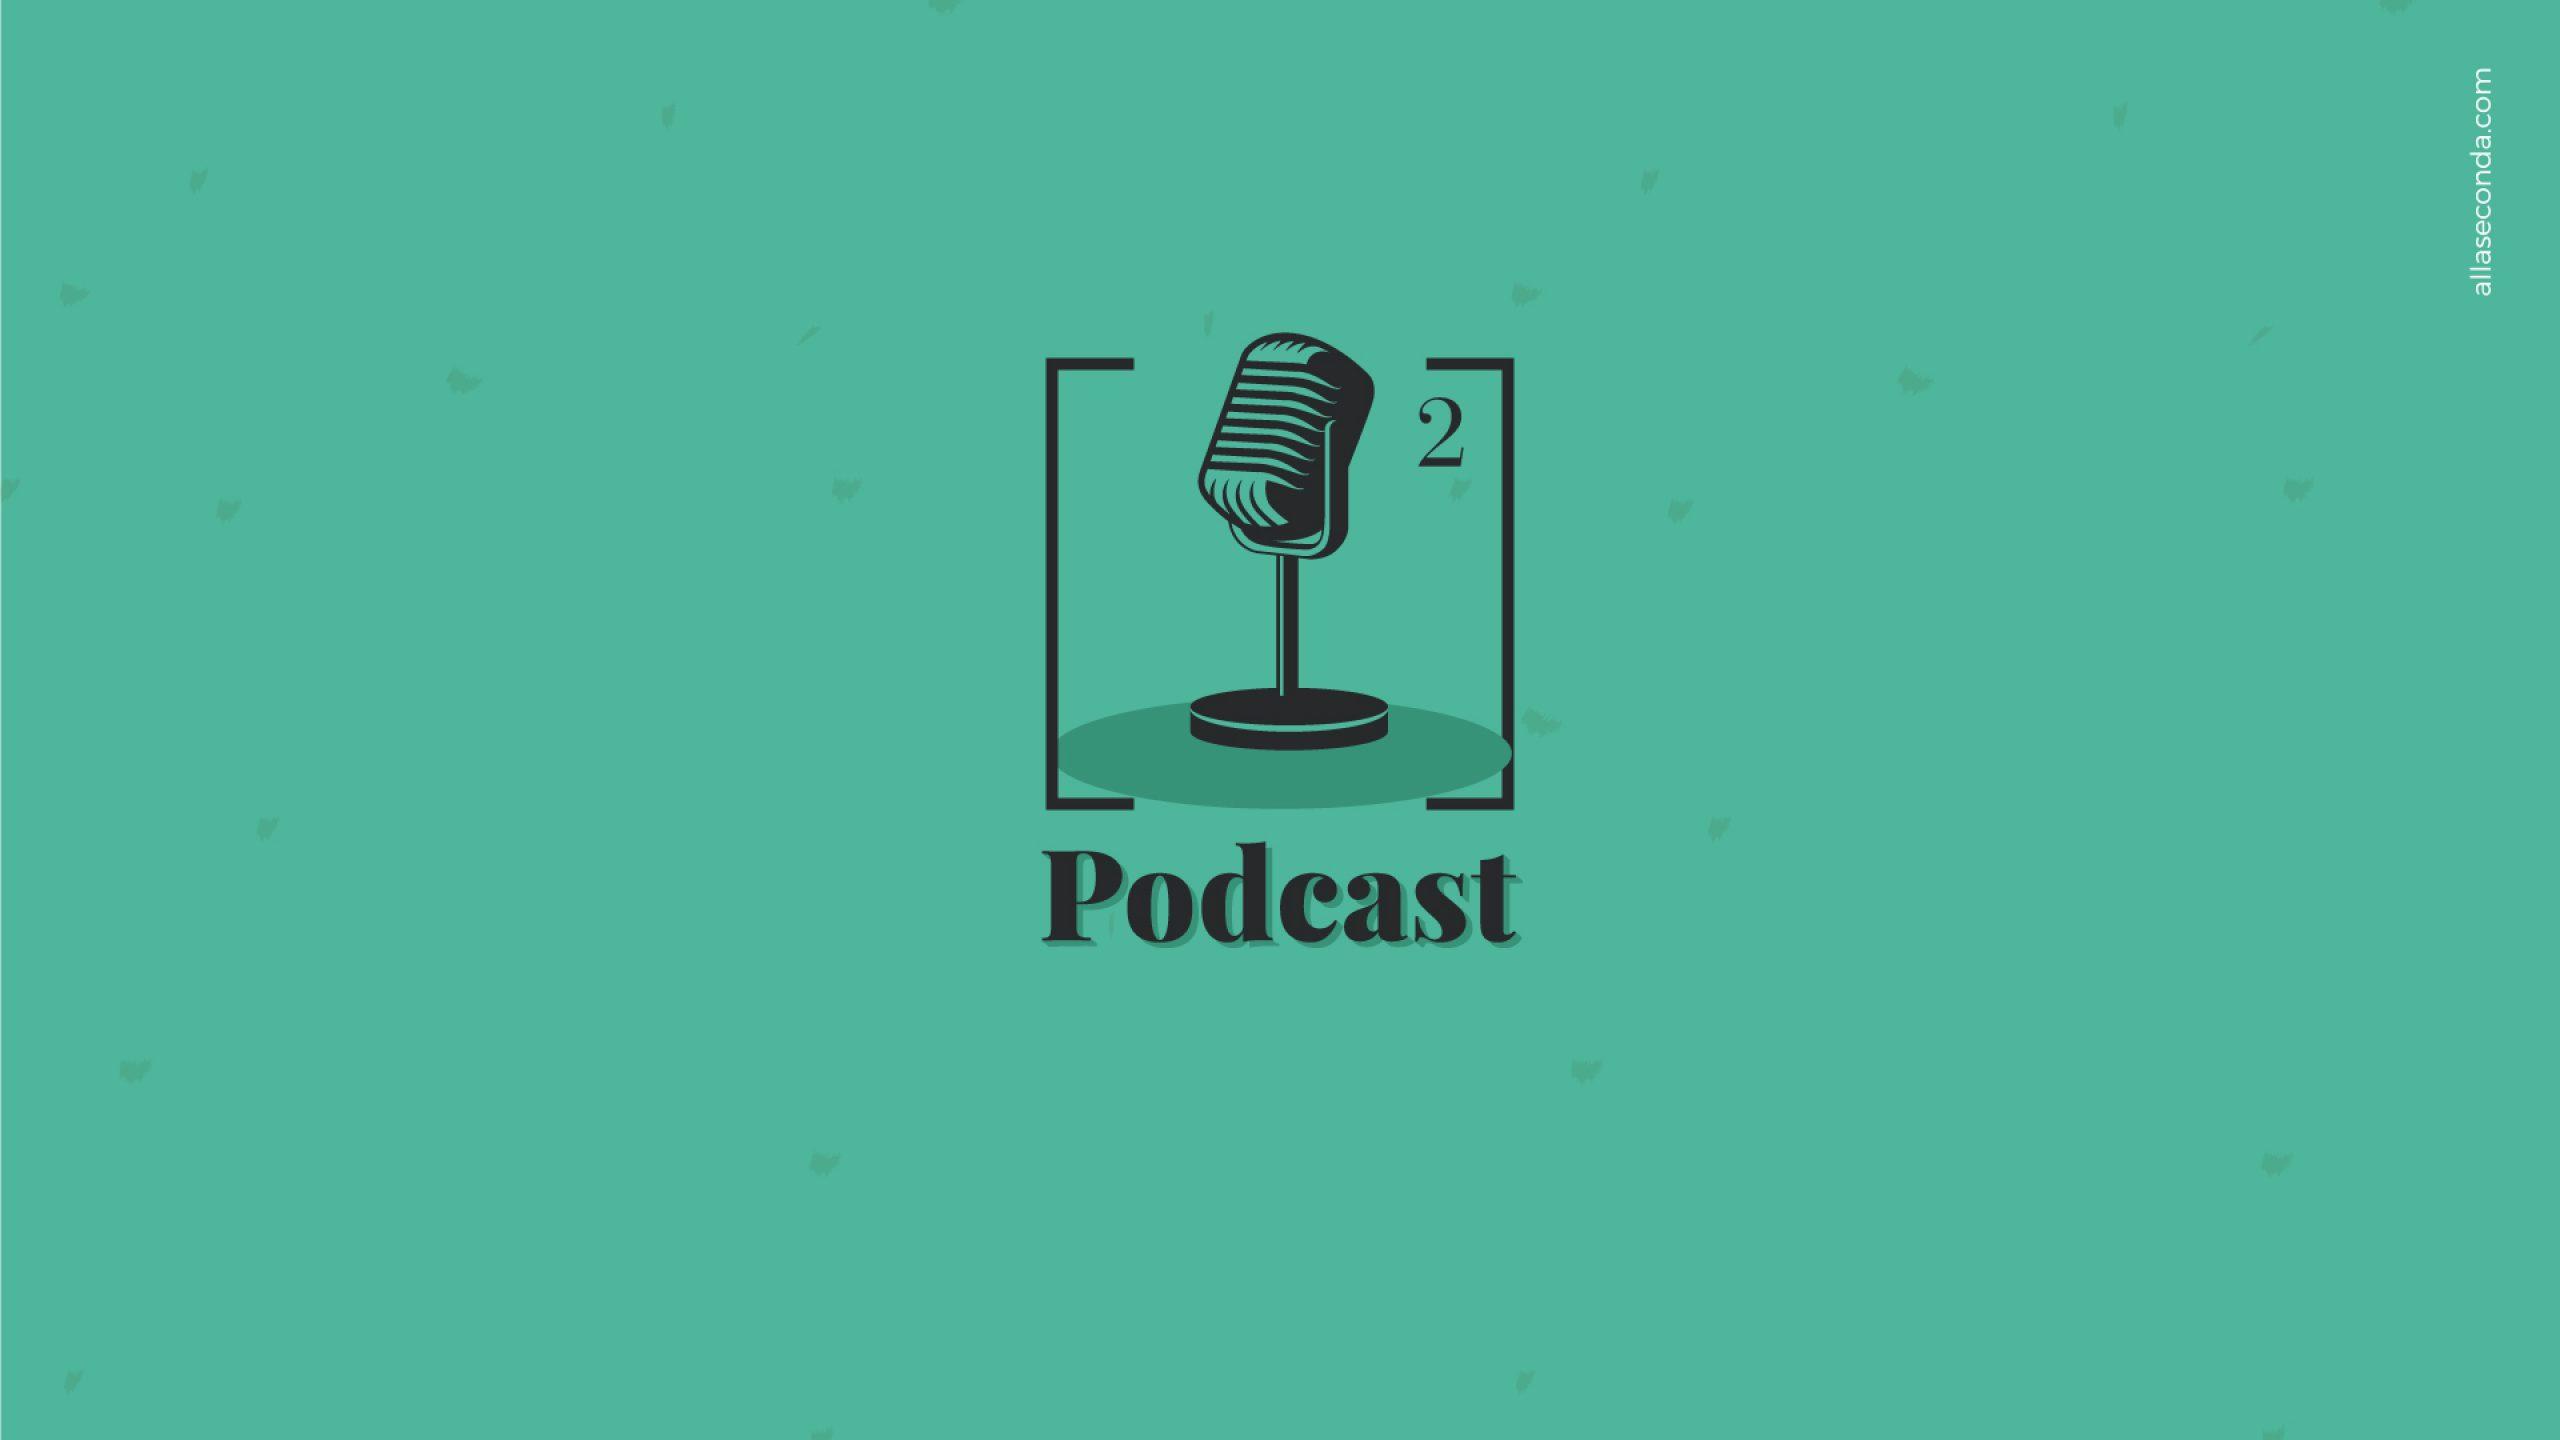 podcast-allaseconda-real-time-marketing